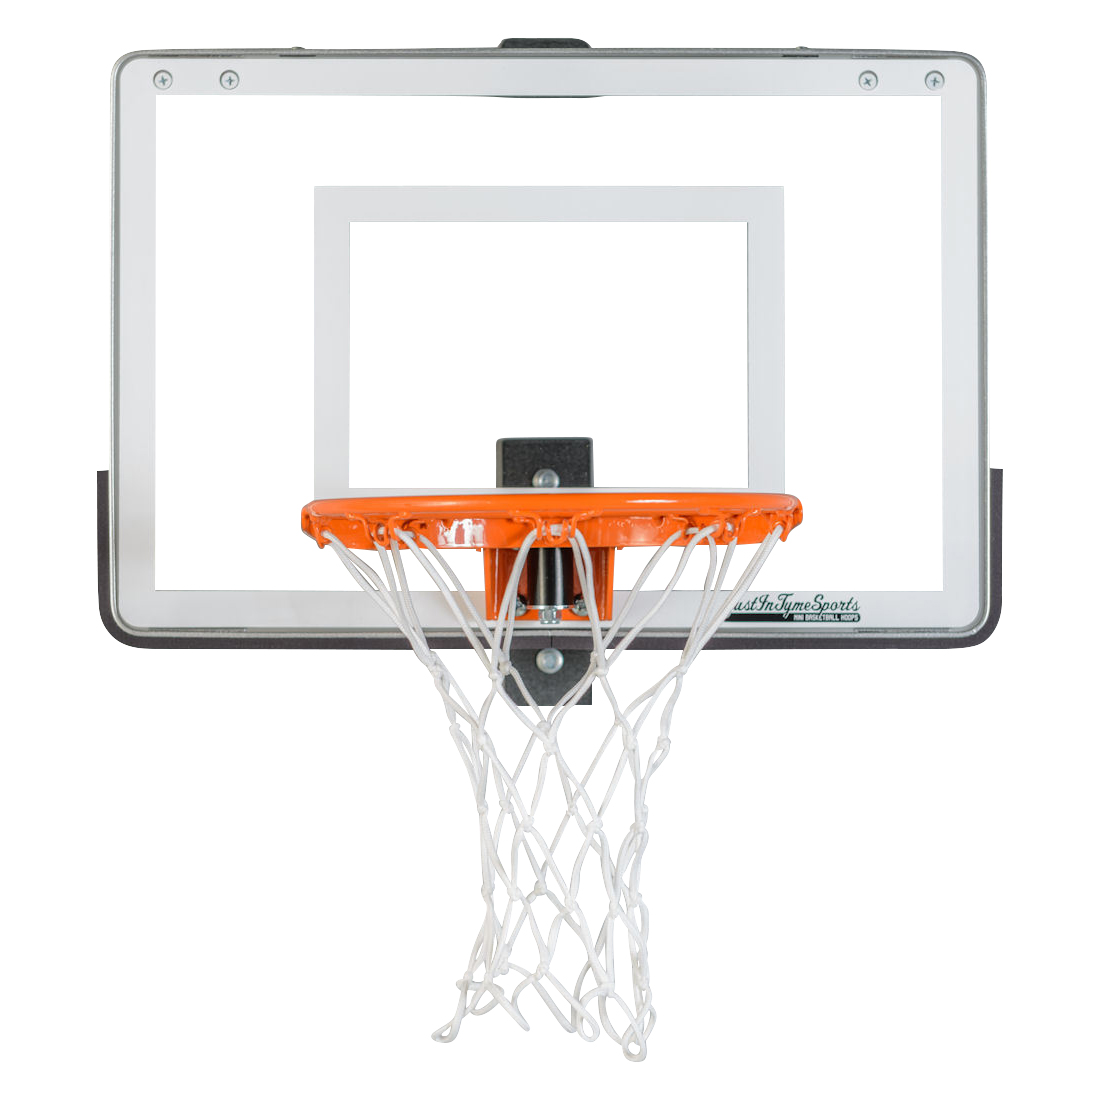 Mini Pro 1 0 Basketball Hoop Set Ltp Justintymesports